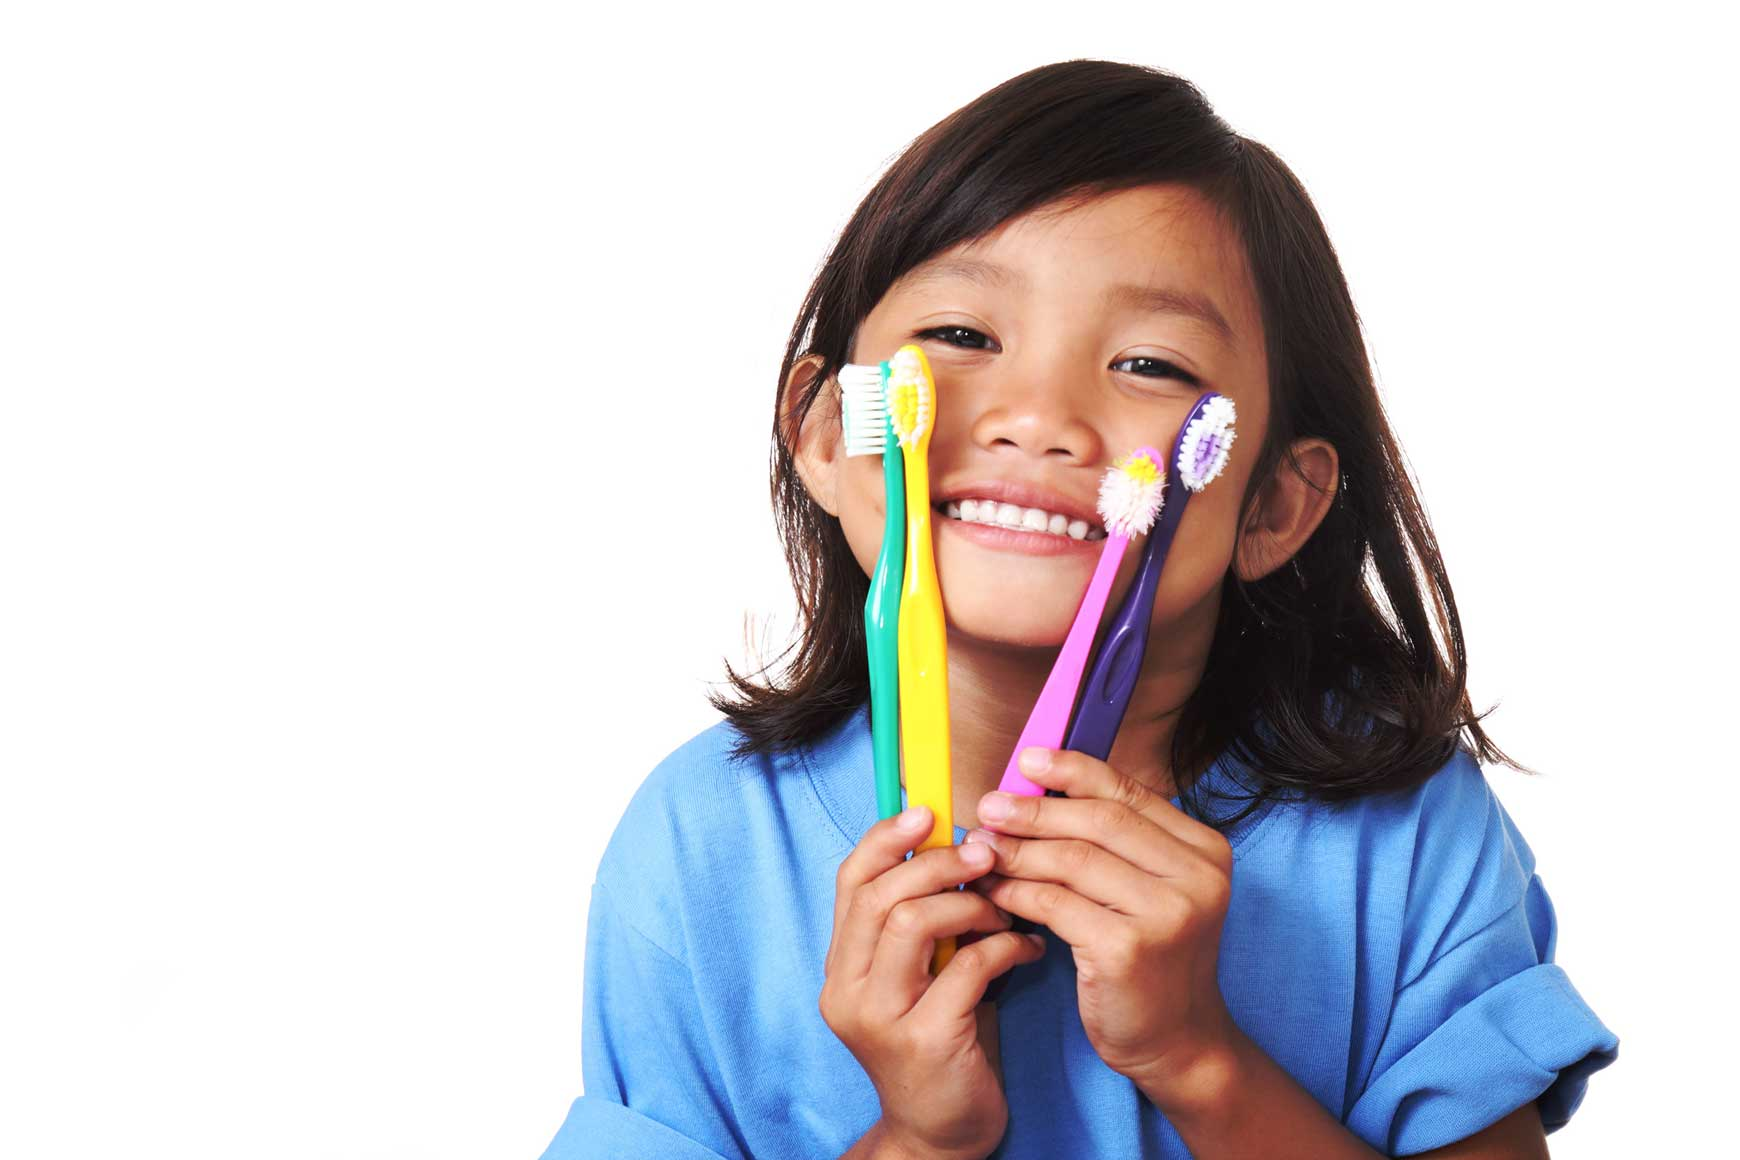 What Is the Best Toothbrush for My Child?